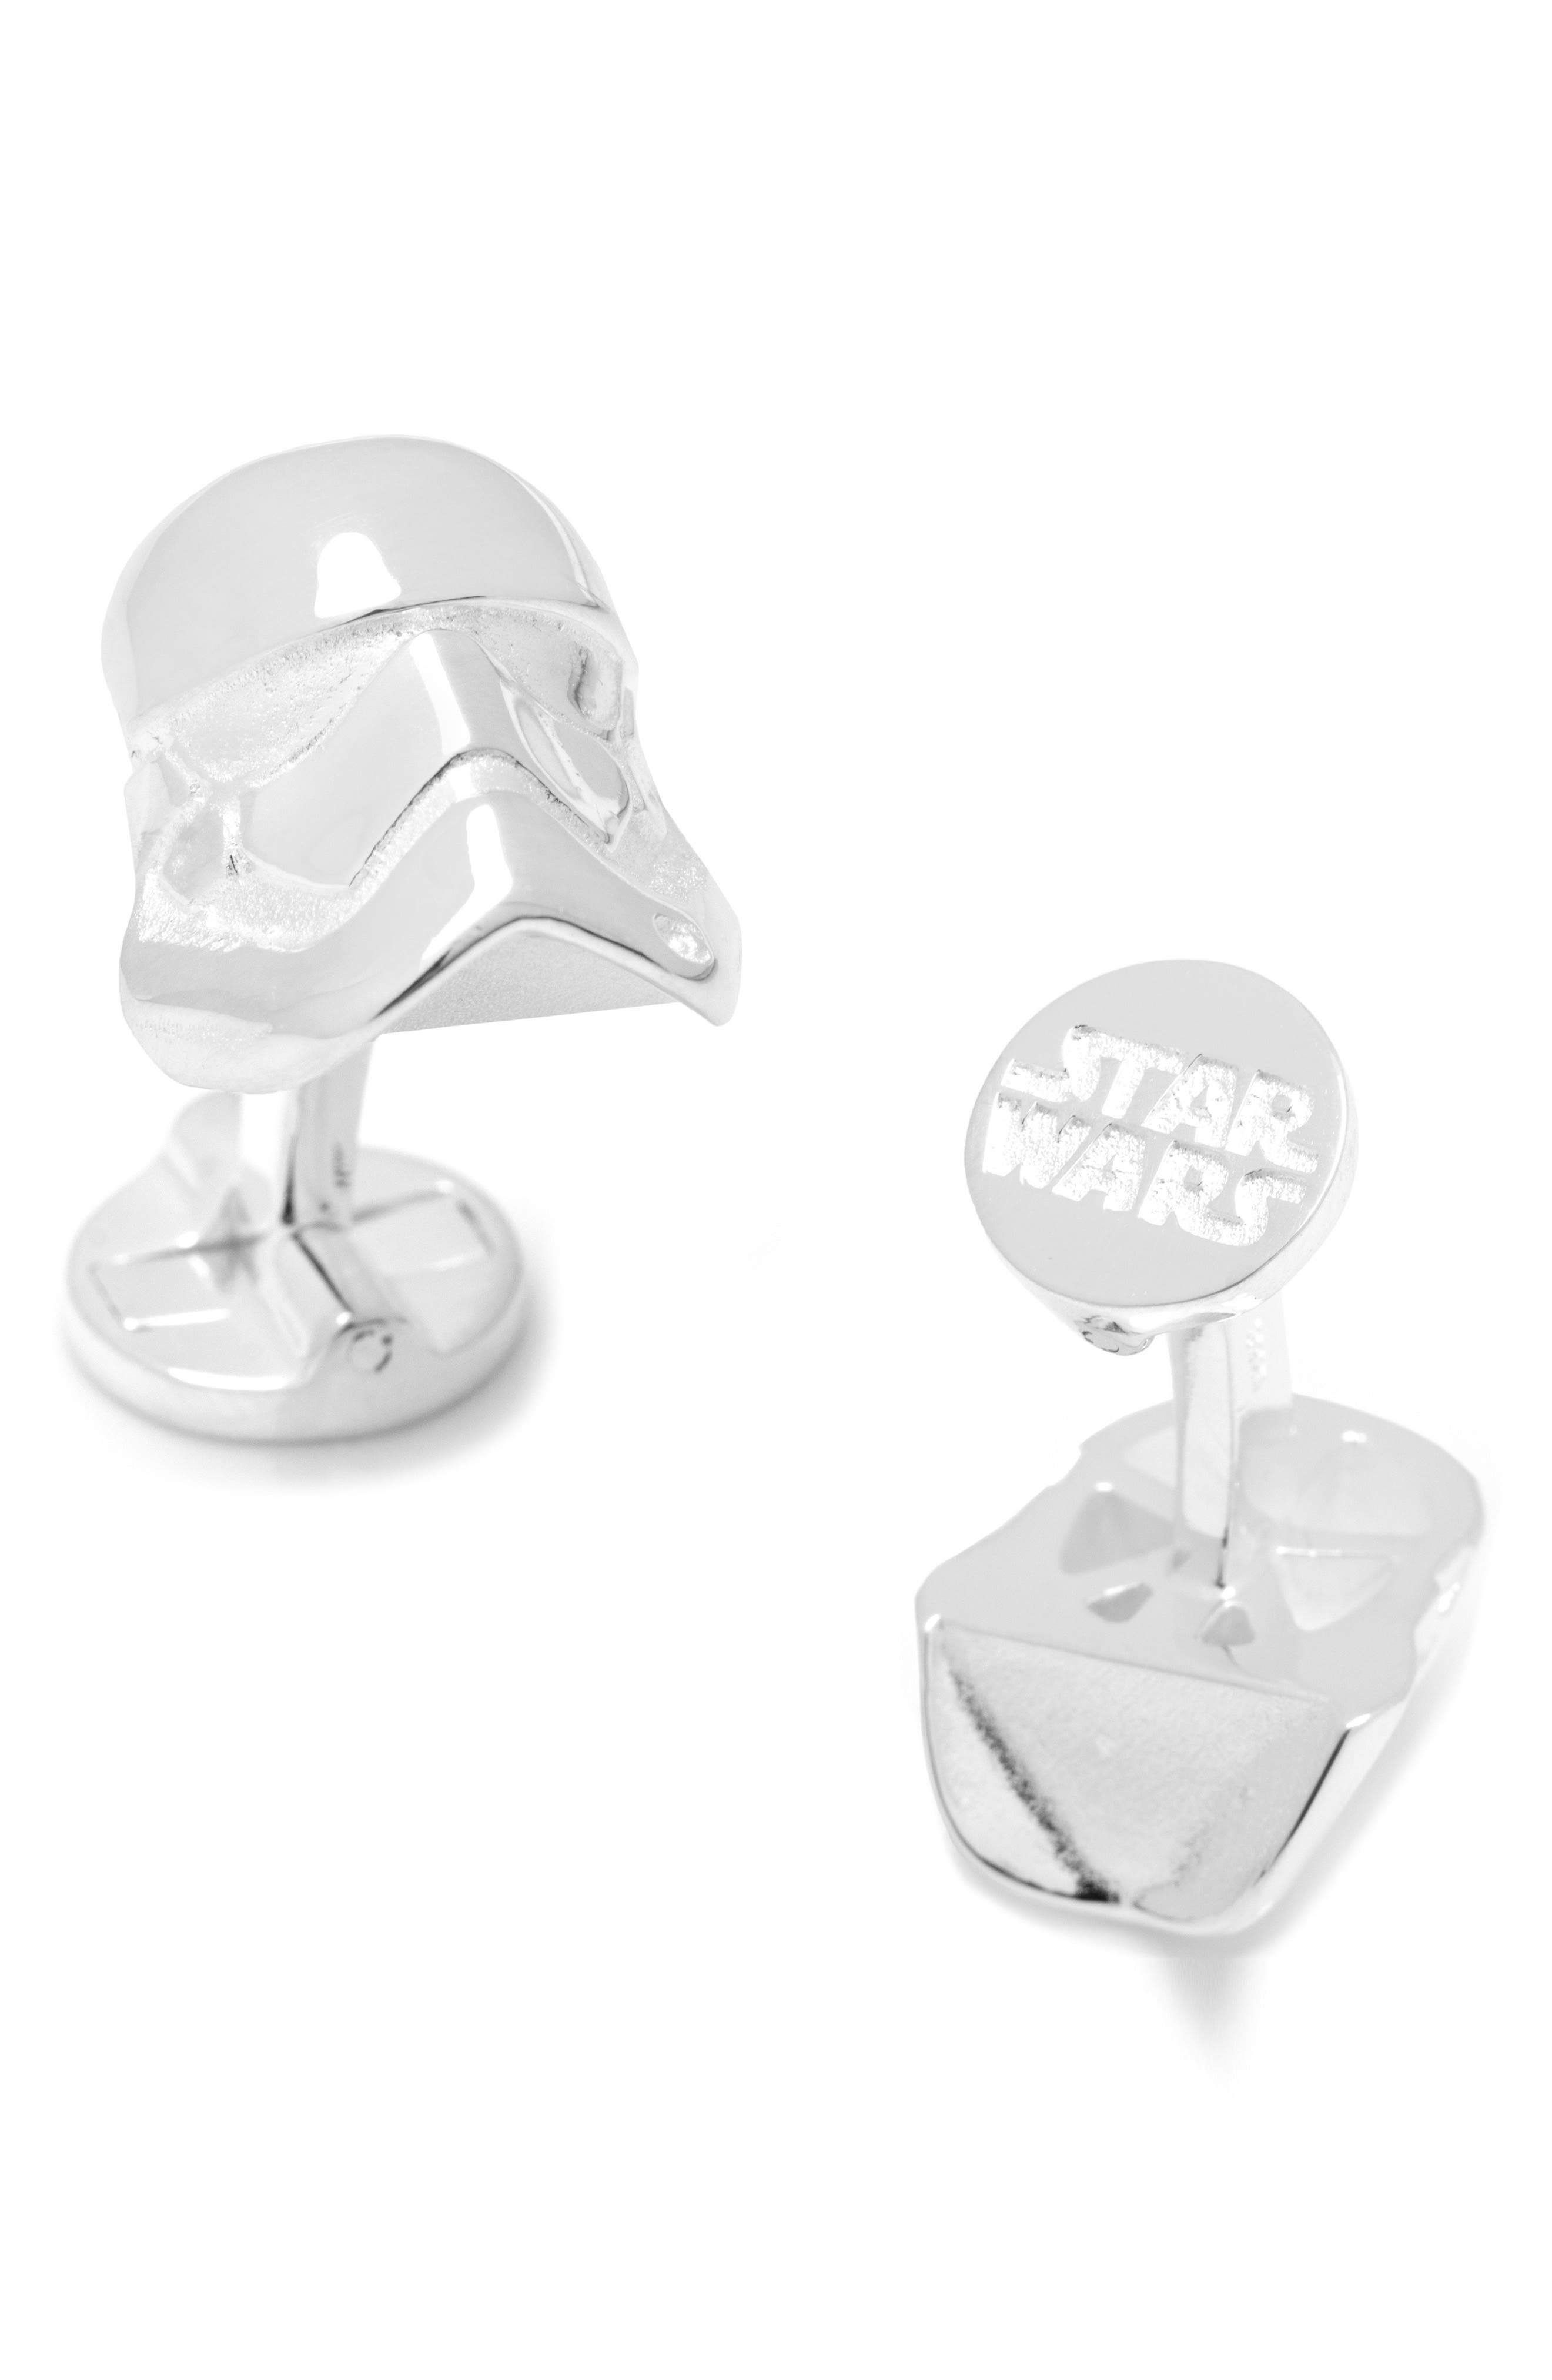 Star Wars<sup>™</sup> Stormtrooper Cuff Links,                             Main thumbnail 1, color,                             040